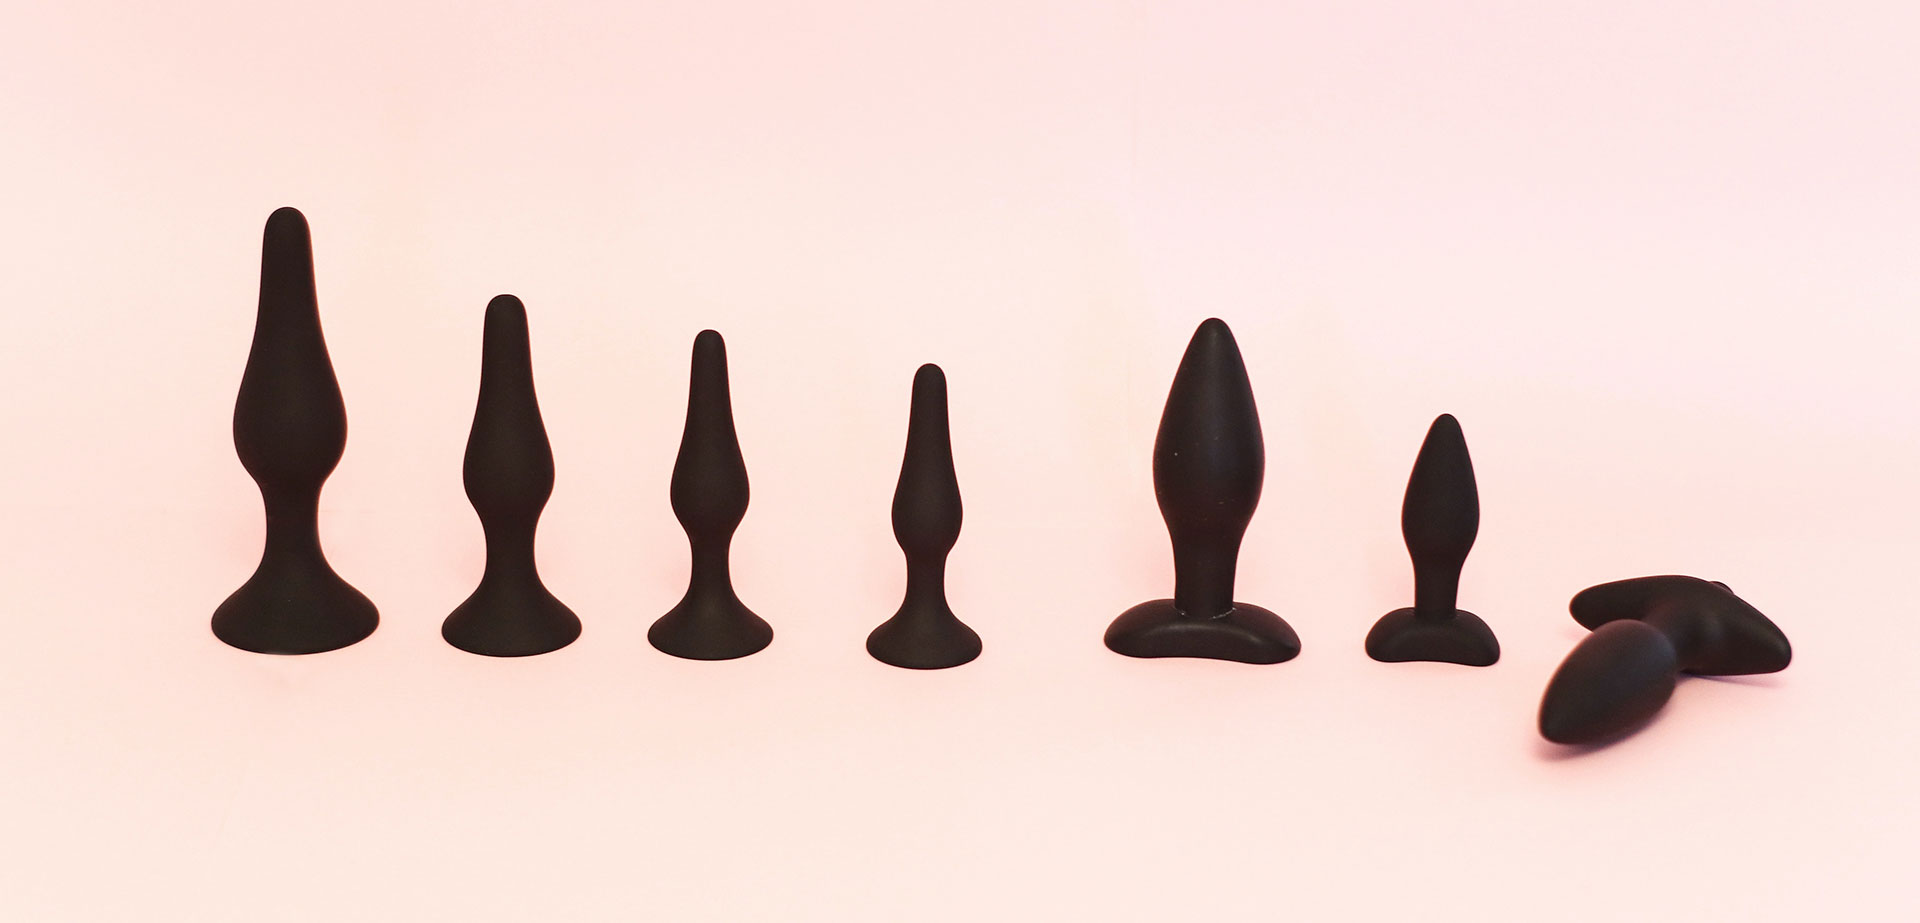 Anal plugs set.